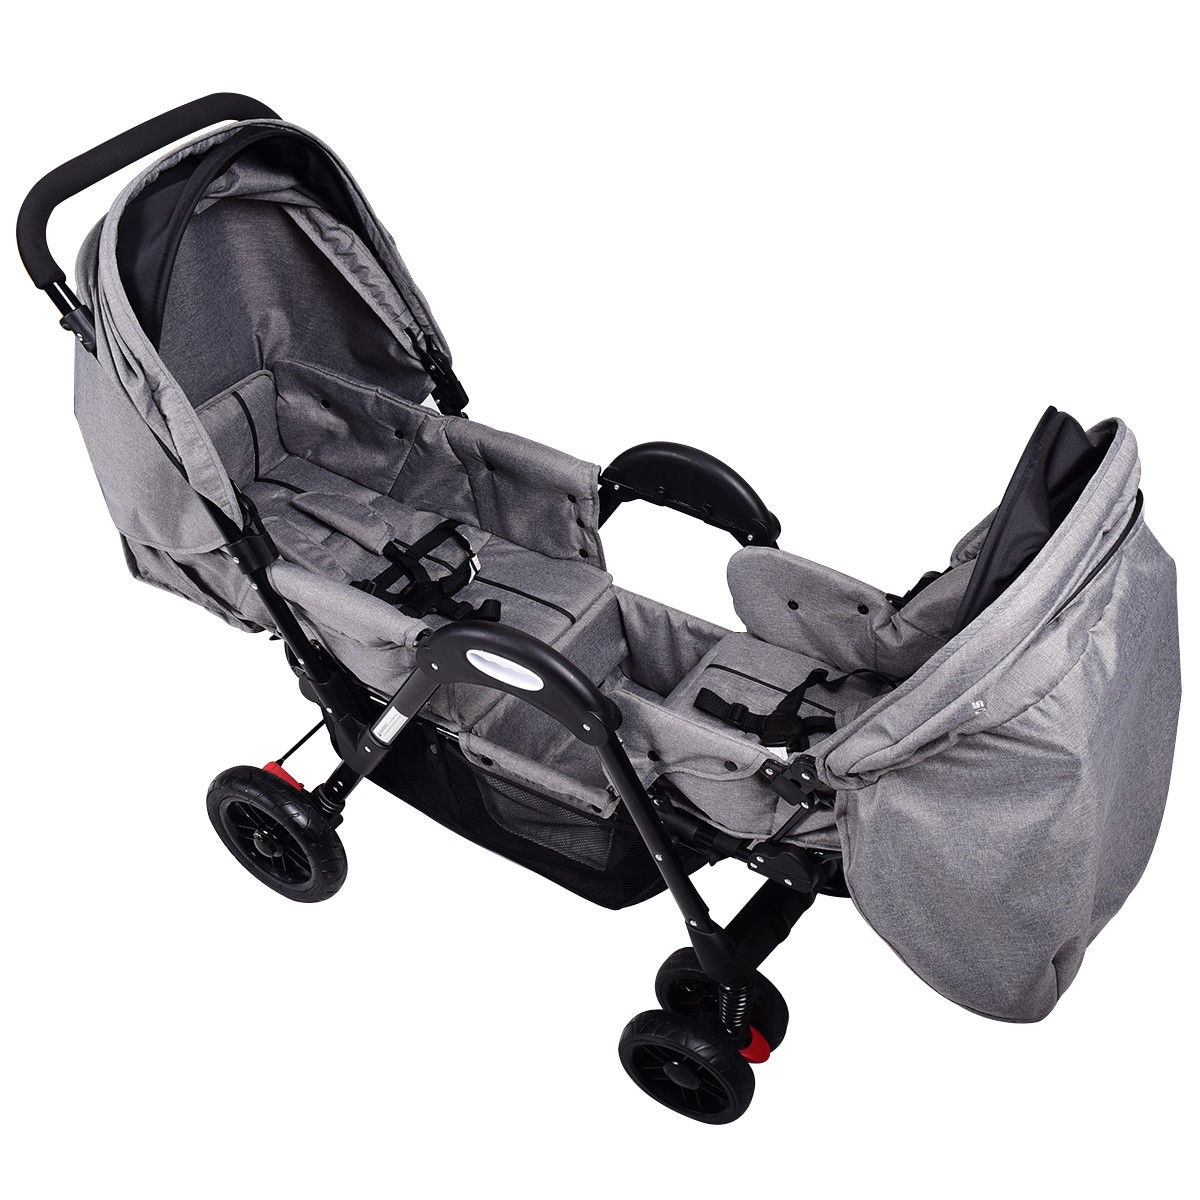 Foldable Face to Face Twin Baby Stroller with Reclining Seats